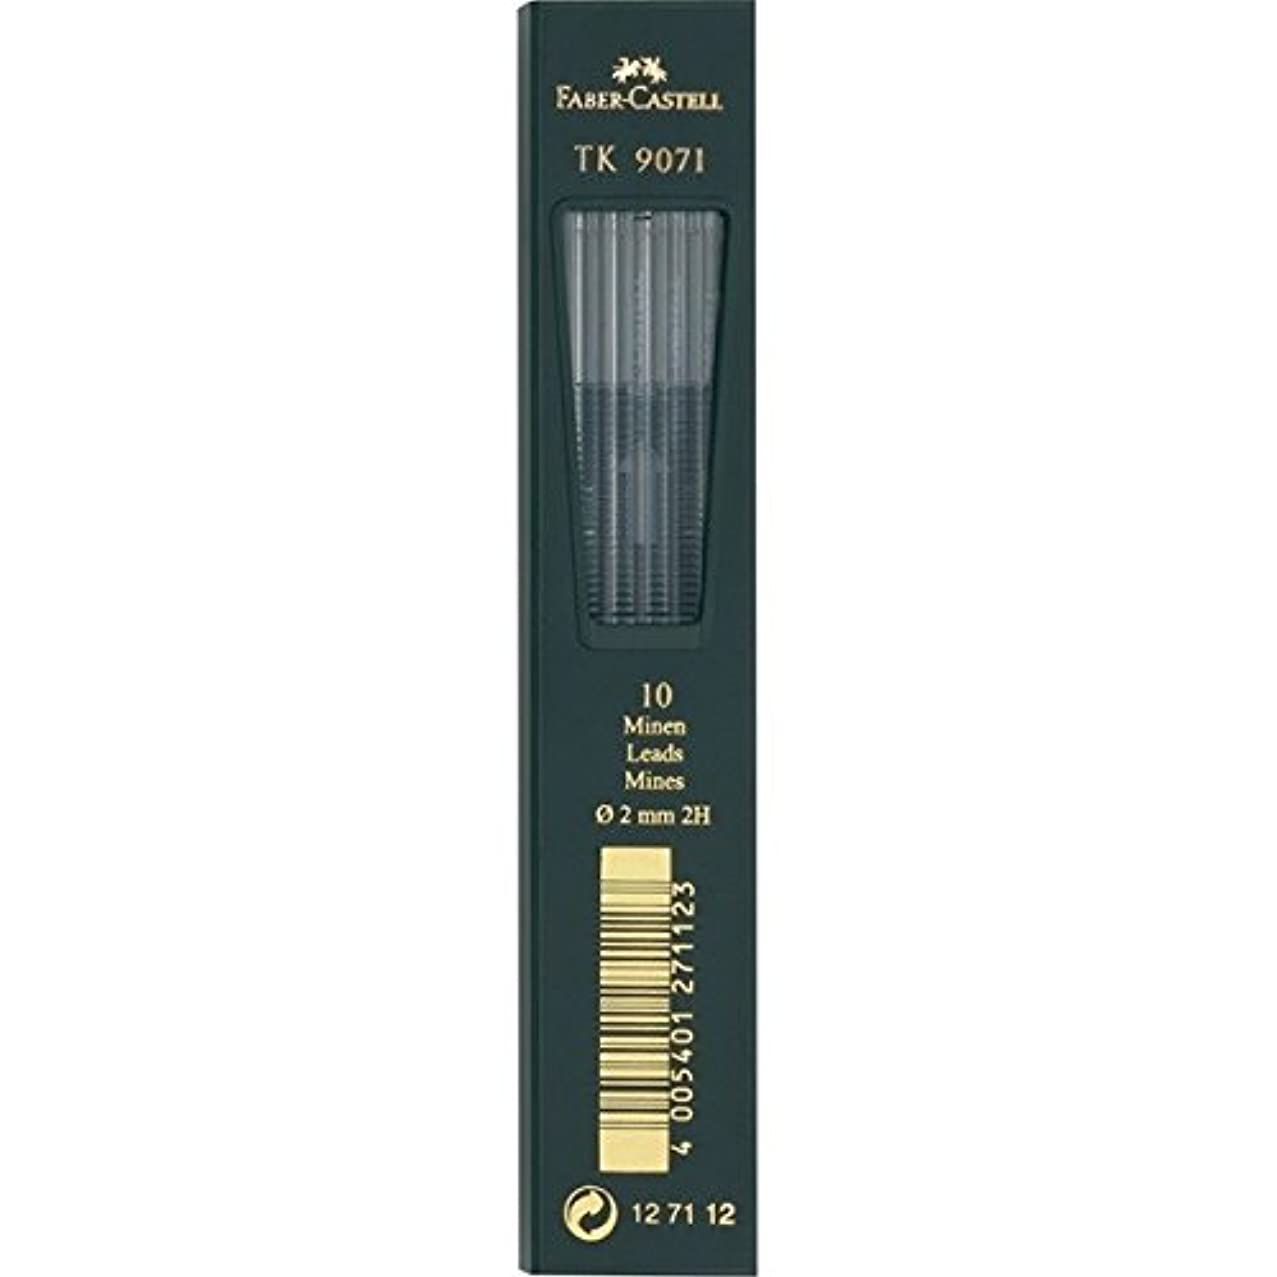 Faber-Castell TK 9400 Clutch Drawing Pencil Leads 2H pack of 10